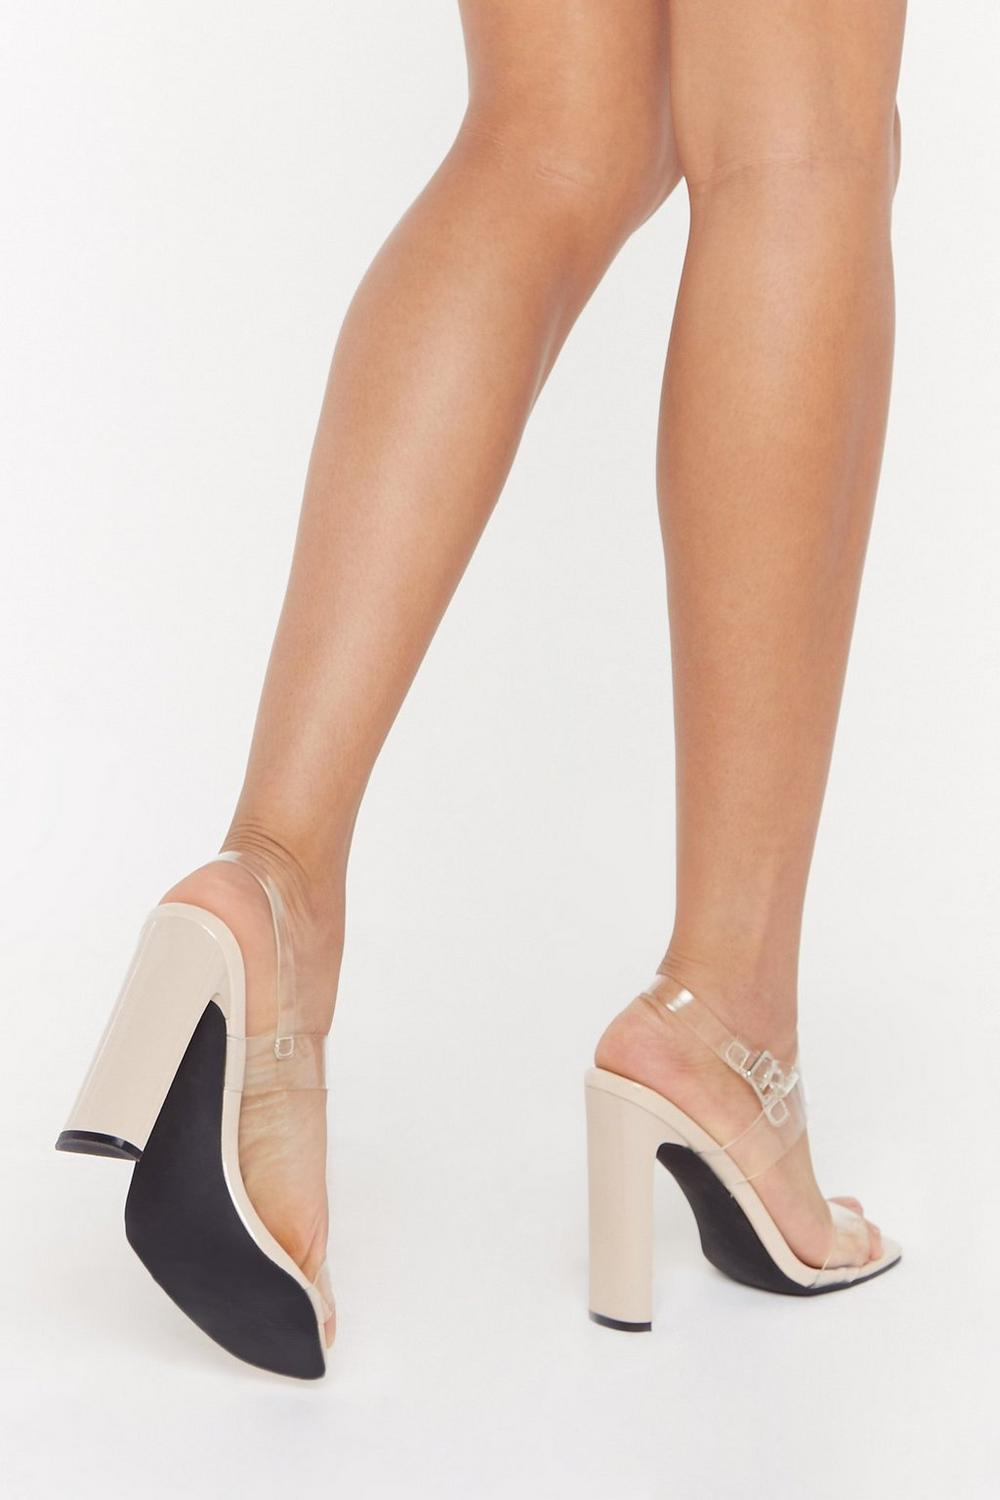 3f5ac0b5f89 Made It Clear Perspex Strappy Heels   Shop Clothes at Nasty Gal!